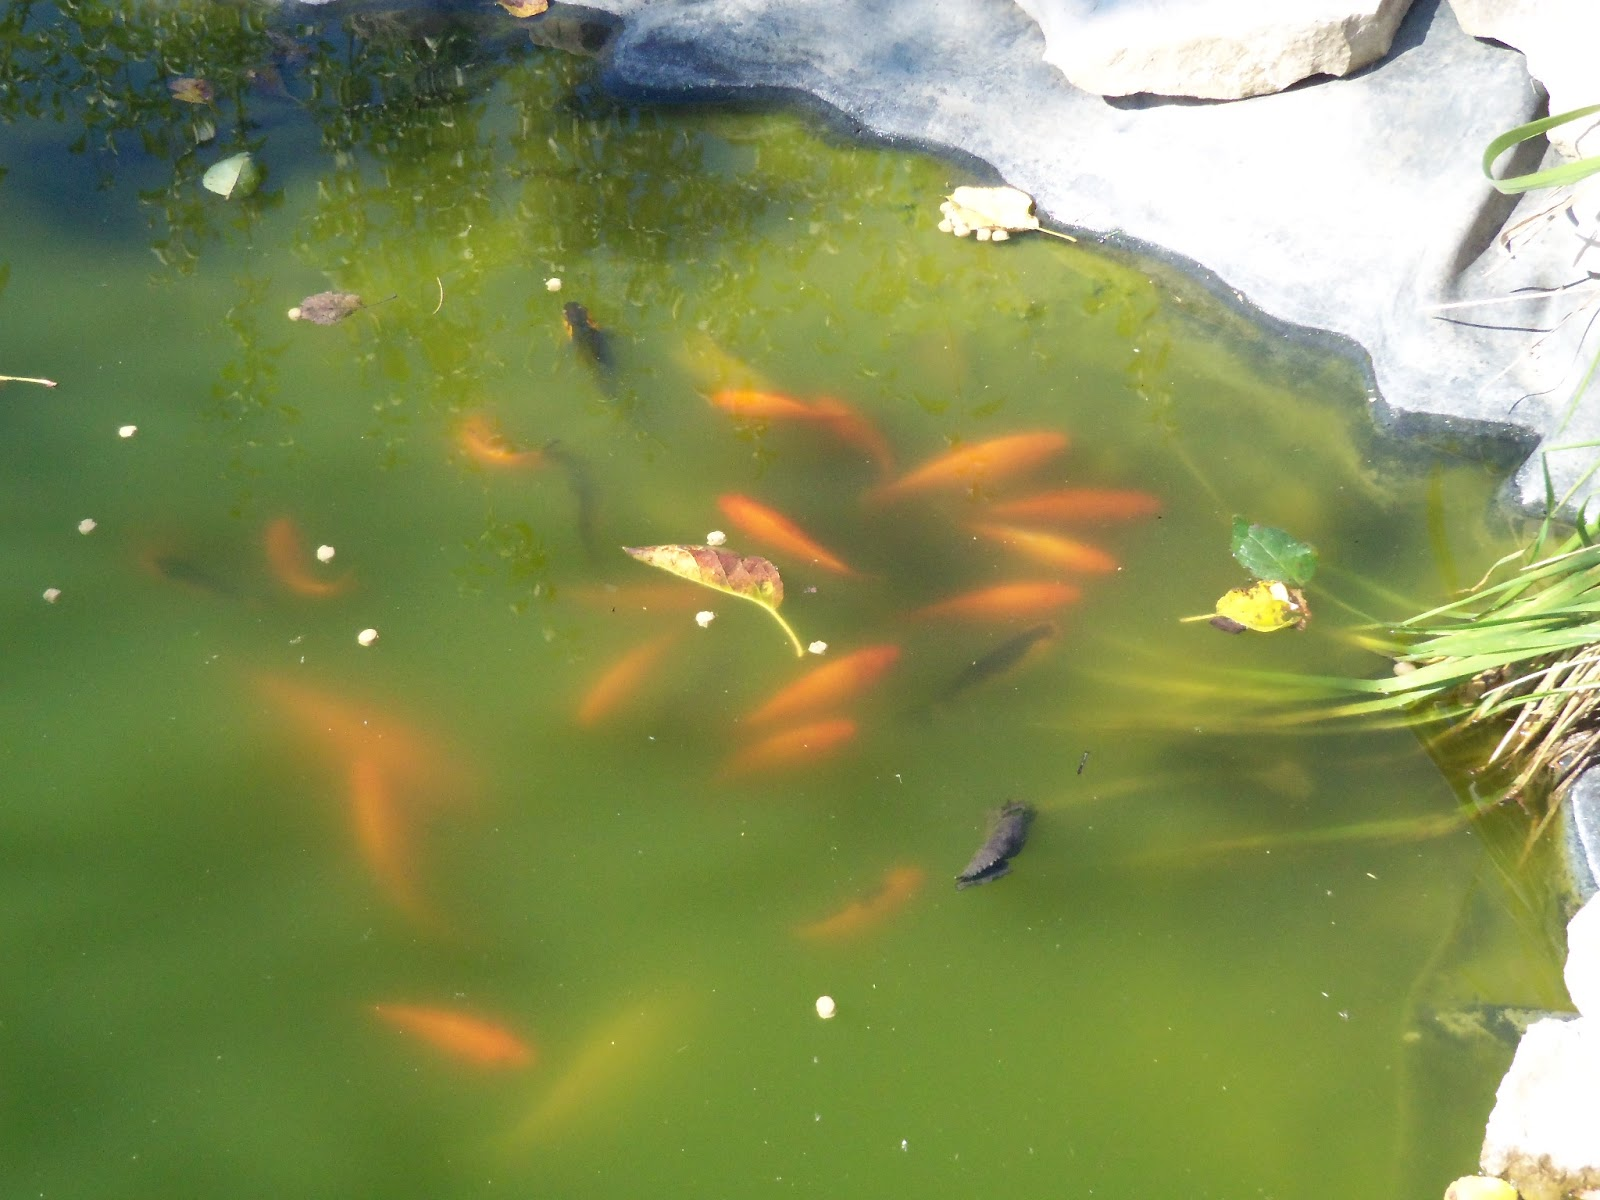 Grandma bonnie 39 s closet todays walk yesterday for Freshwater koi fish